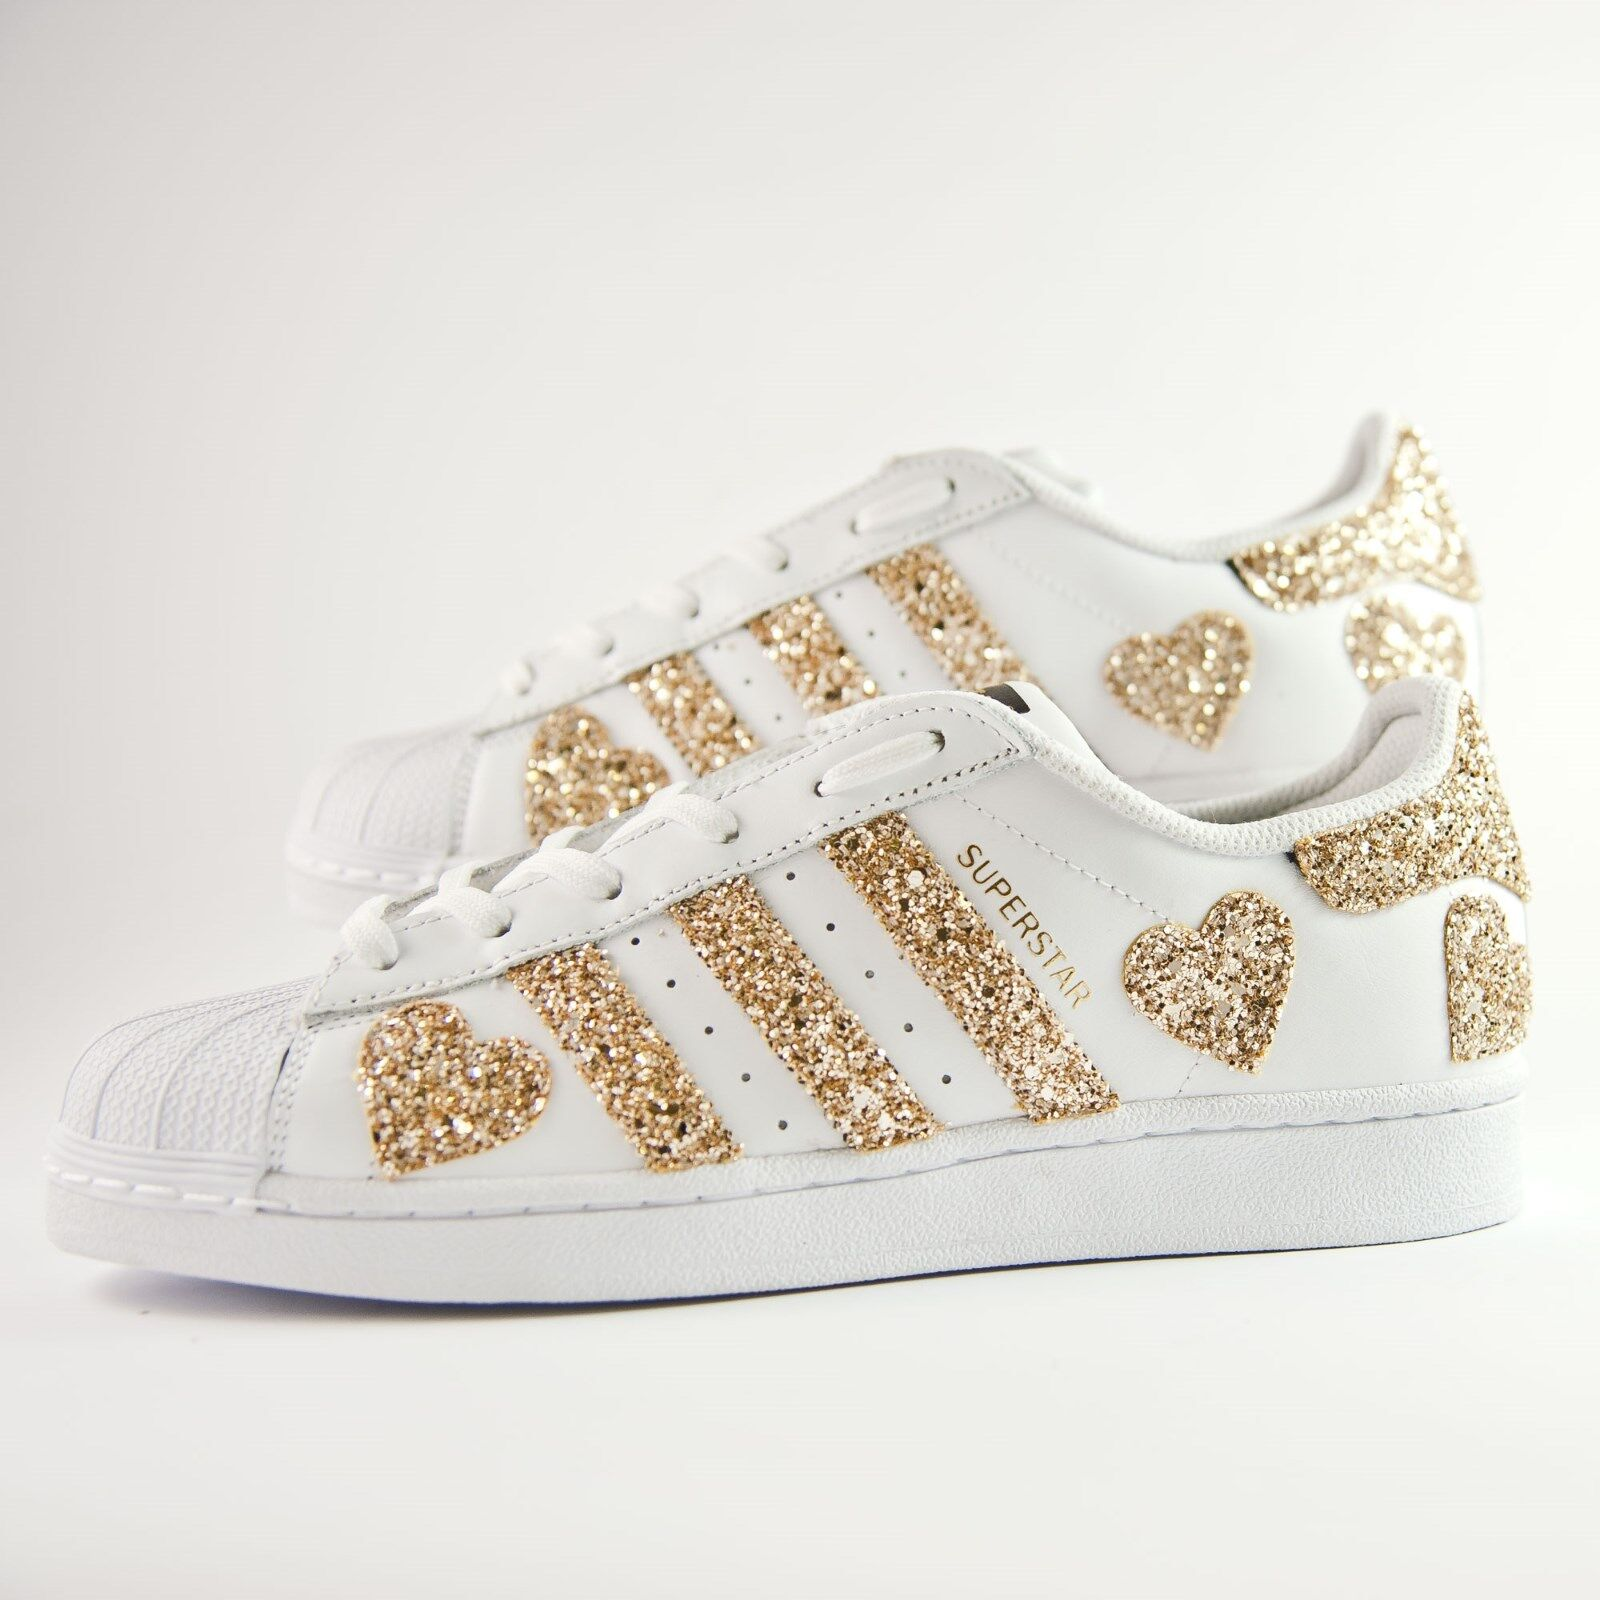 shoes Adidas Superstar with gold Glitter